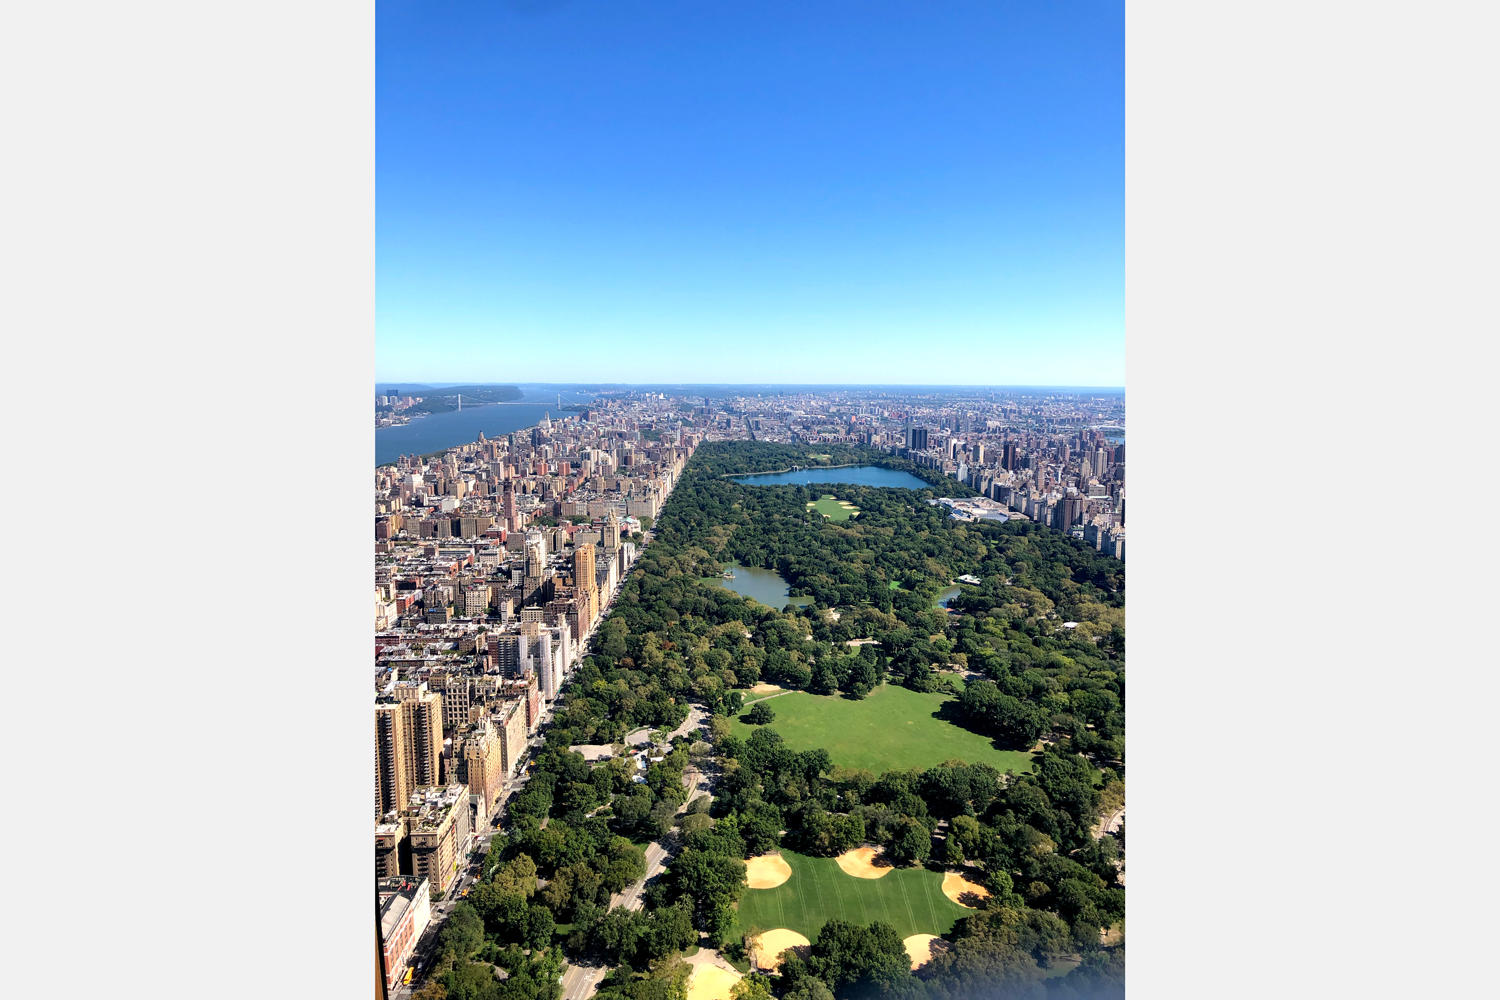 A view from 220 Central Park South (Photo by Anuja Shakya)